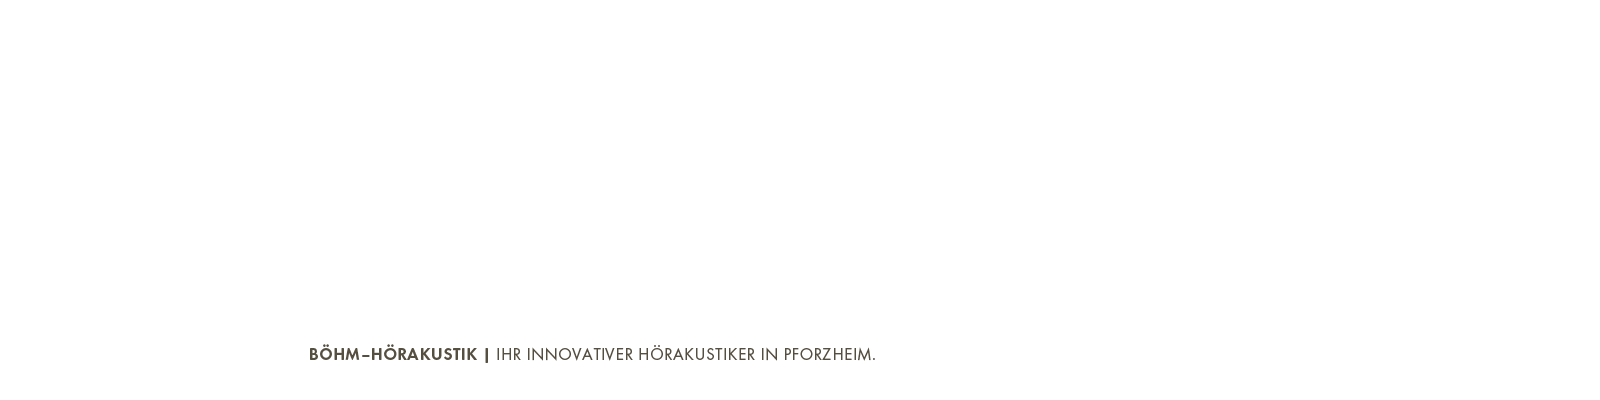 Slider Böhm-Hörakustik Text